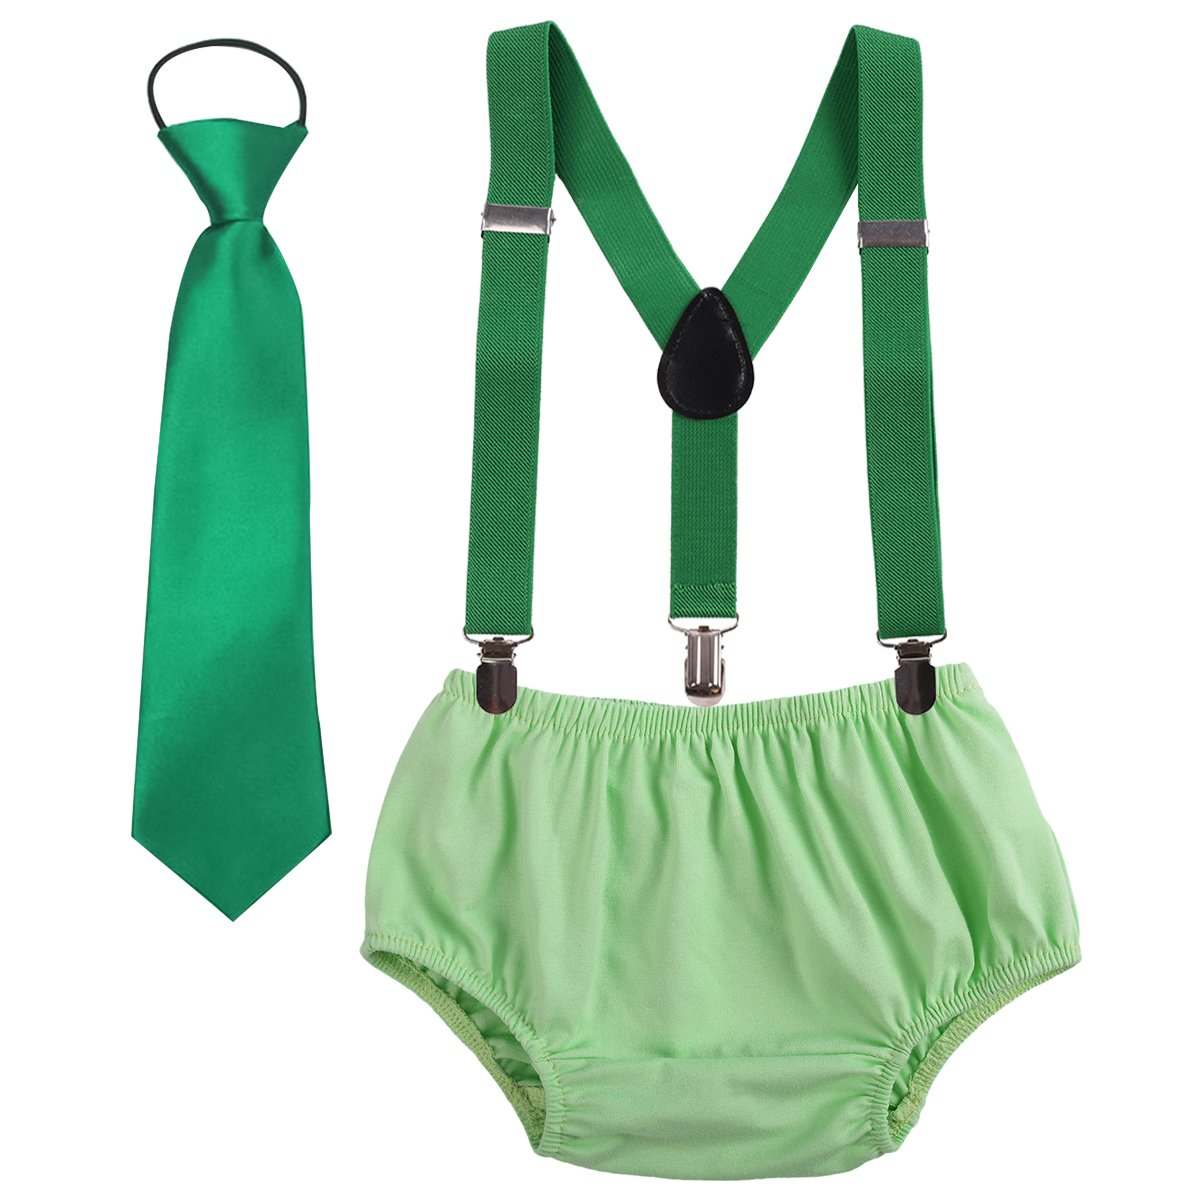 Cake Smash Outfit Baby Boys Toddler First Birthday Adjustable Y Back Clip Suspenders Bloomers Necktie Bowtie set